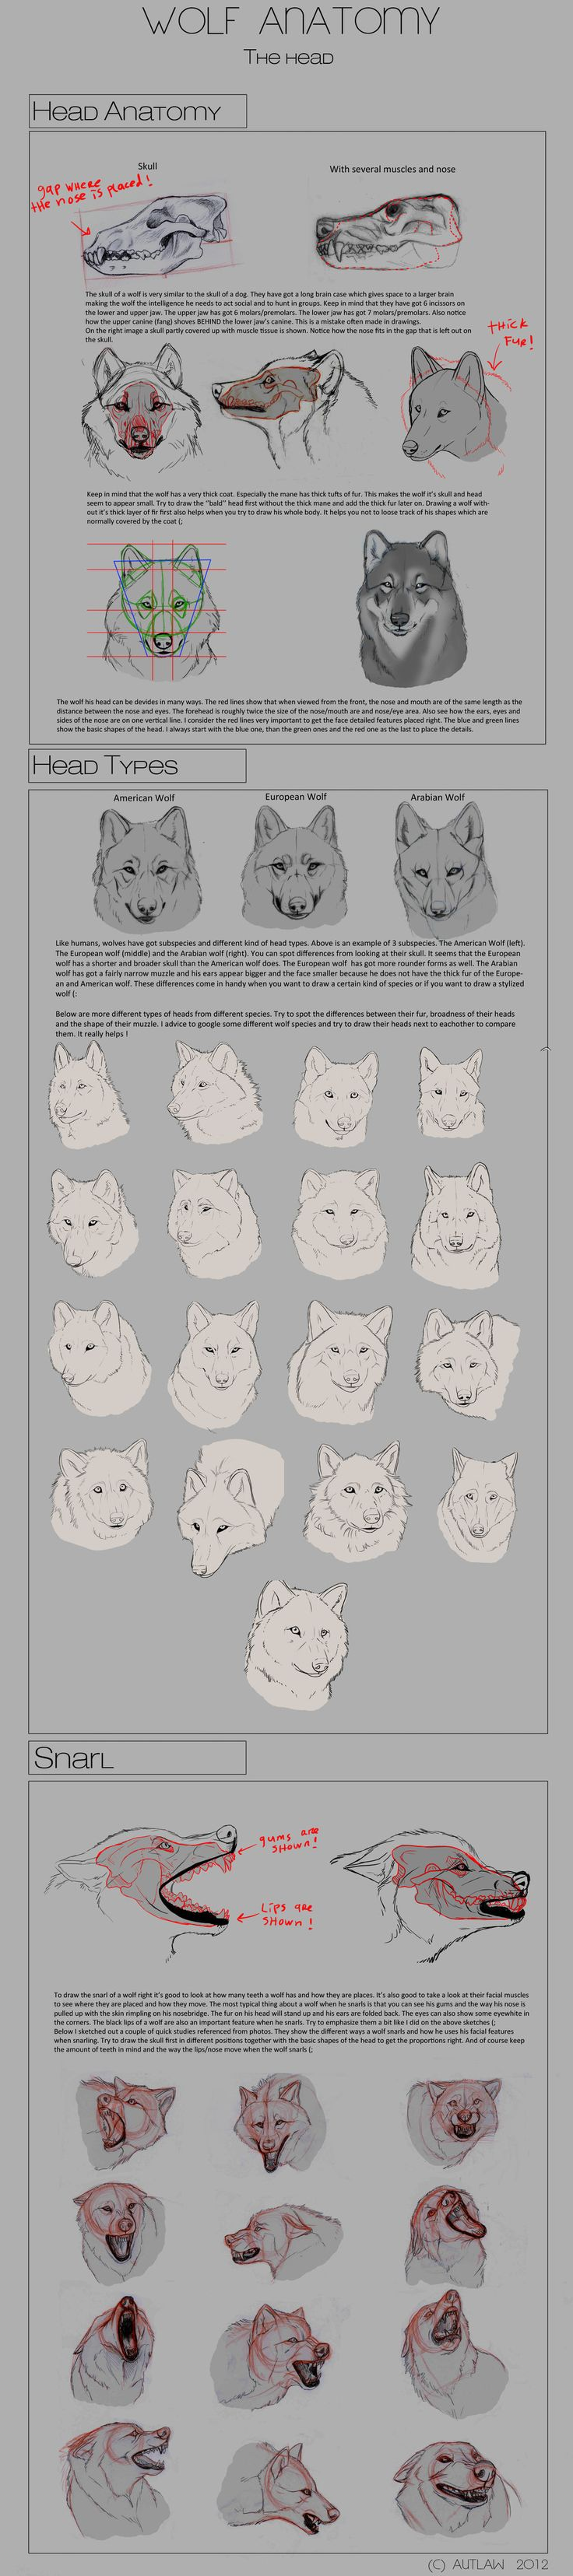 Wolf Anatomy - Part 3 by *Autlaw on deviantART || CHARACTER DESIGN REFERENCES | Find more at https://www.facebook.com/CharacterDesignReferences